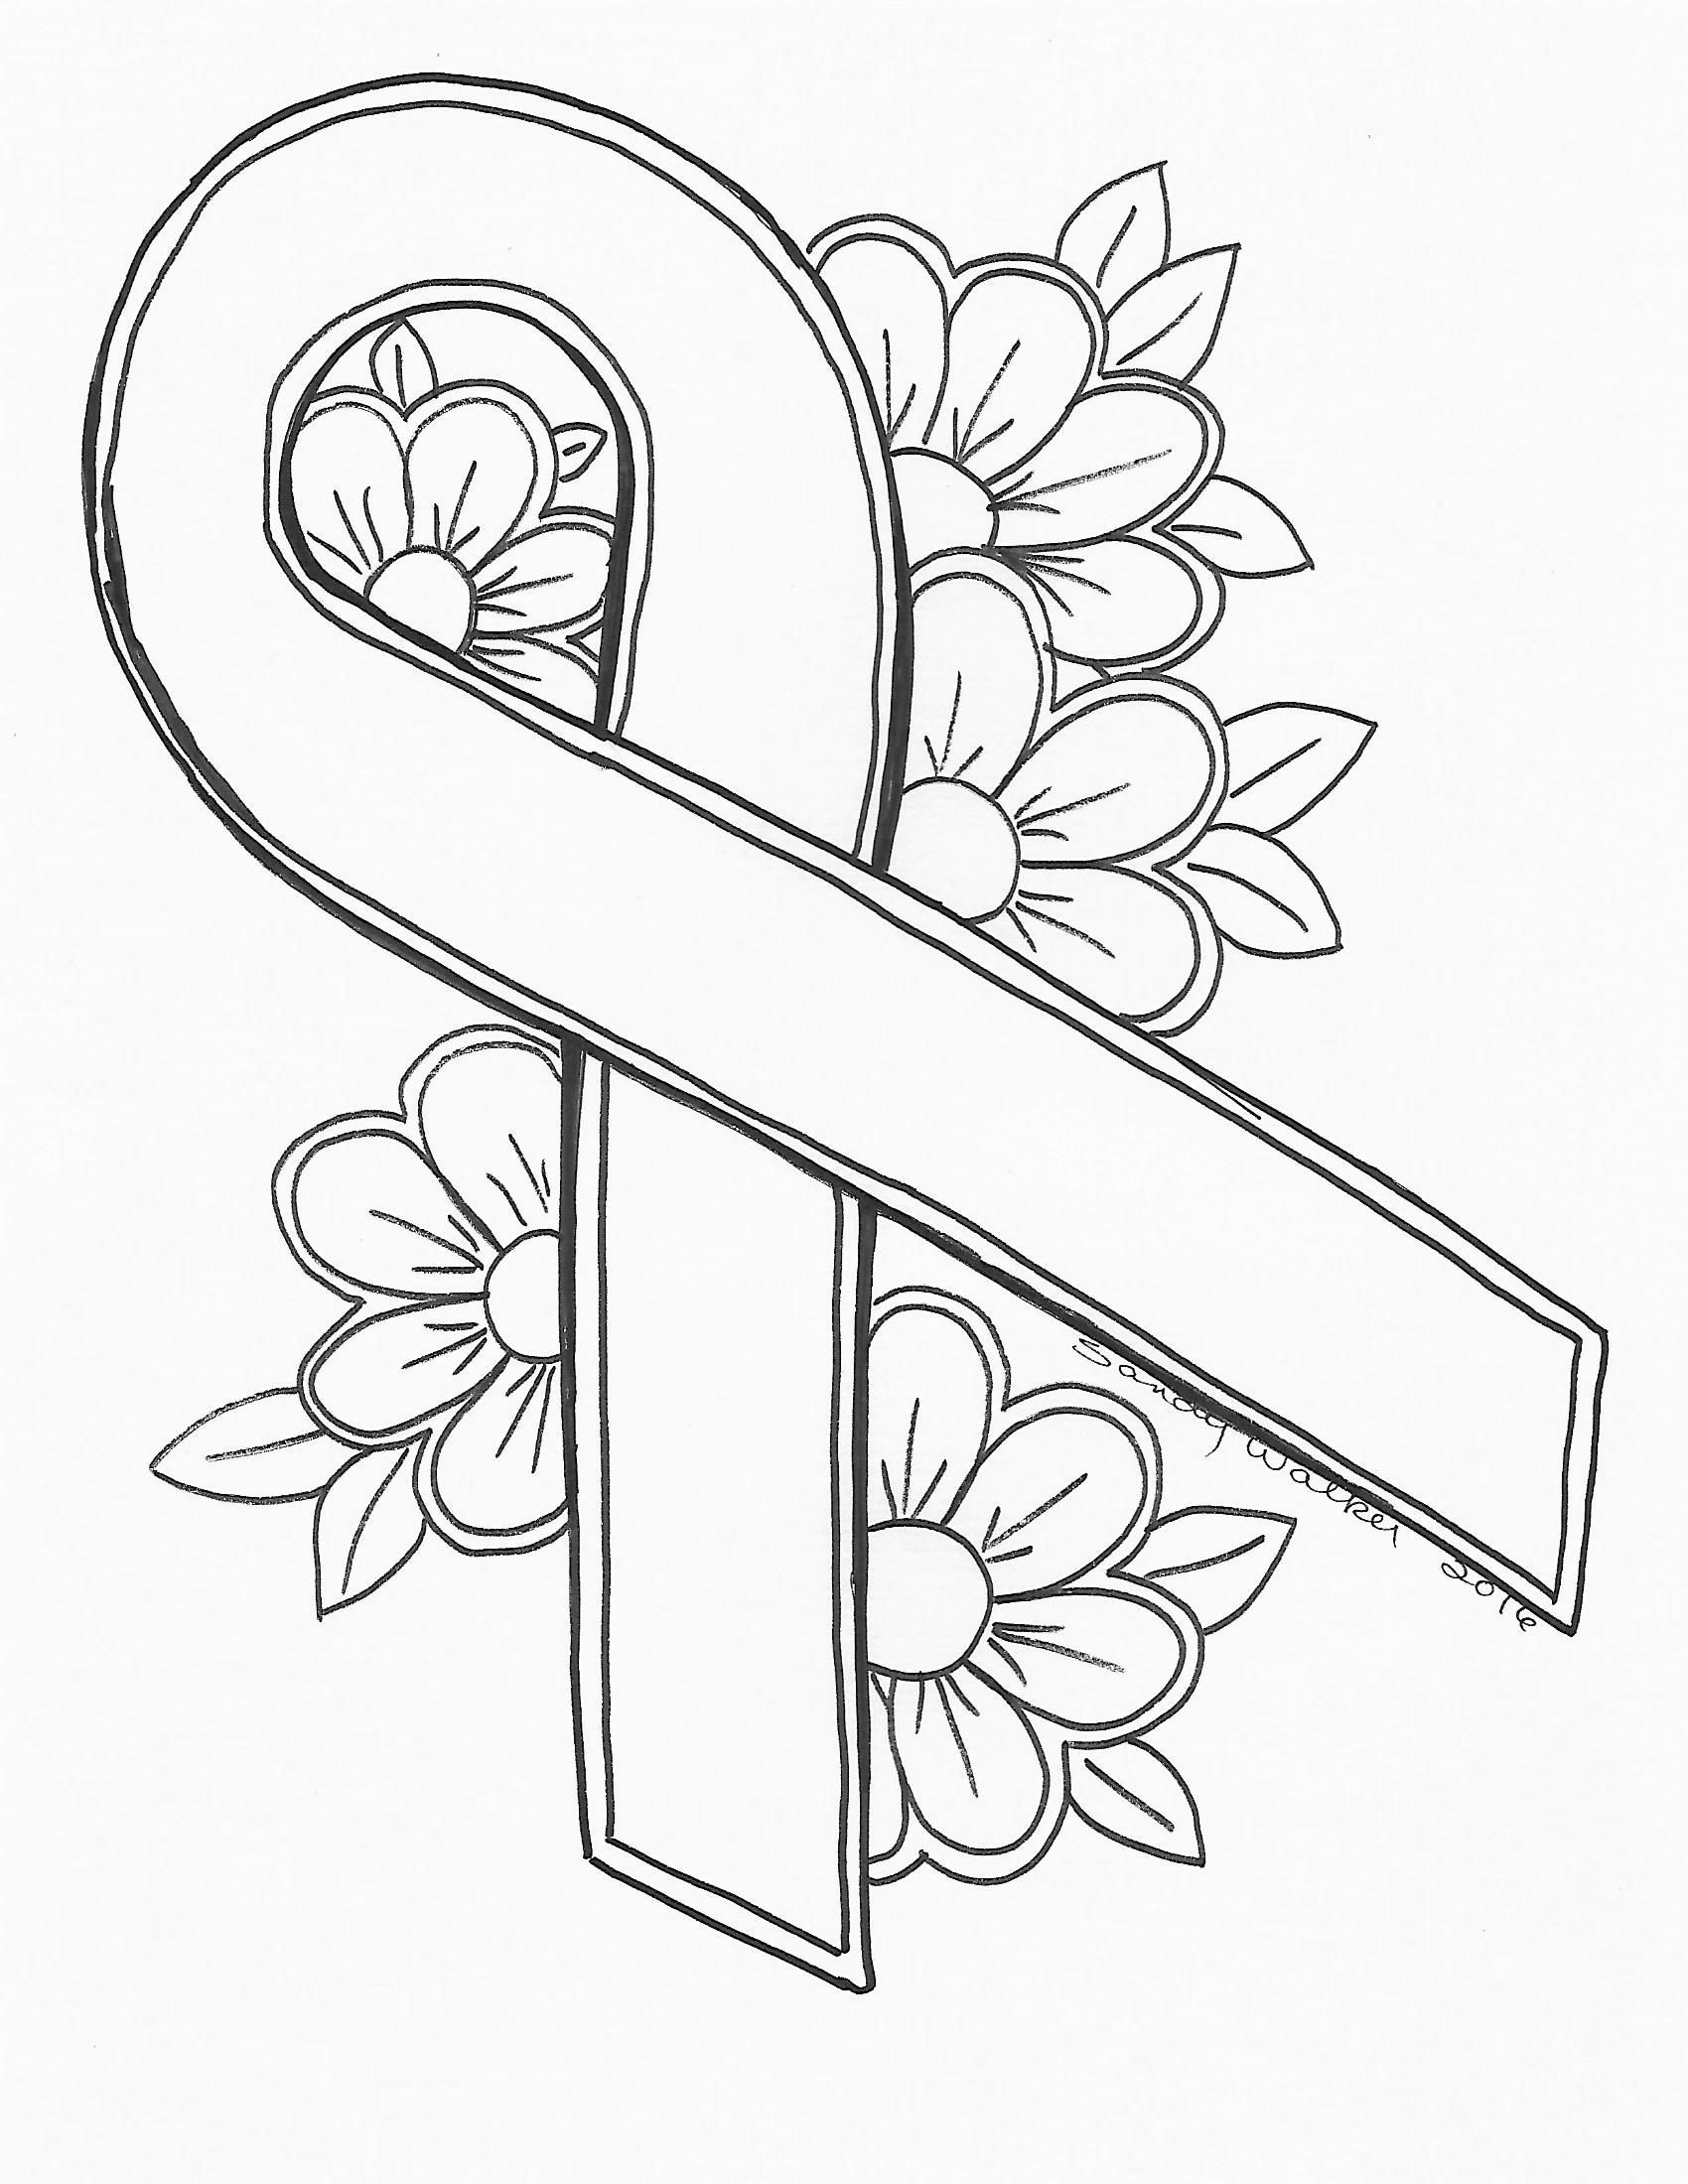 coloring pages for cancer awareness | An Original by Sandra Walker 2016. Ribbon for Cancer ...